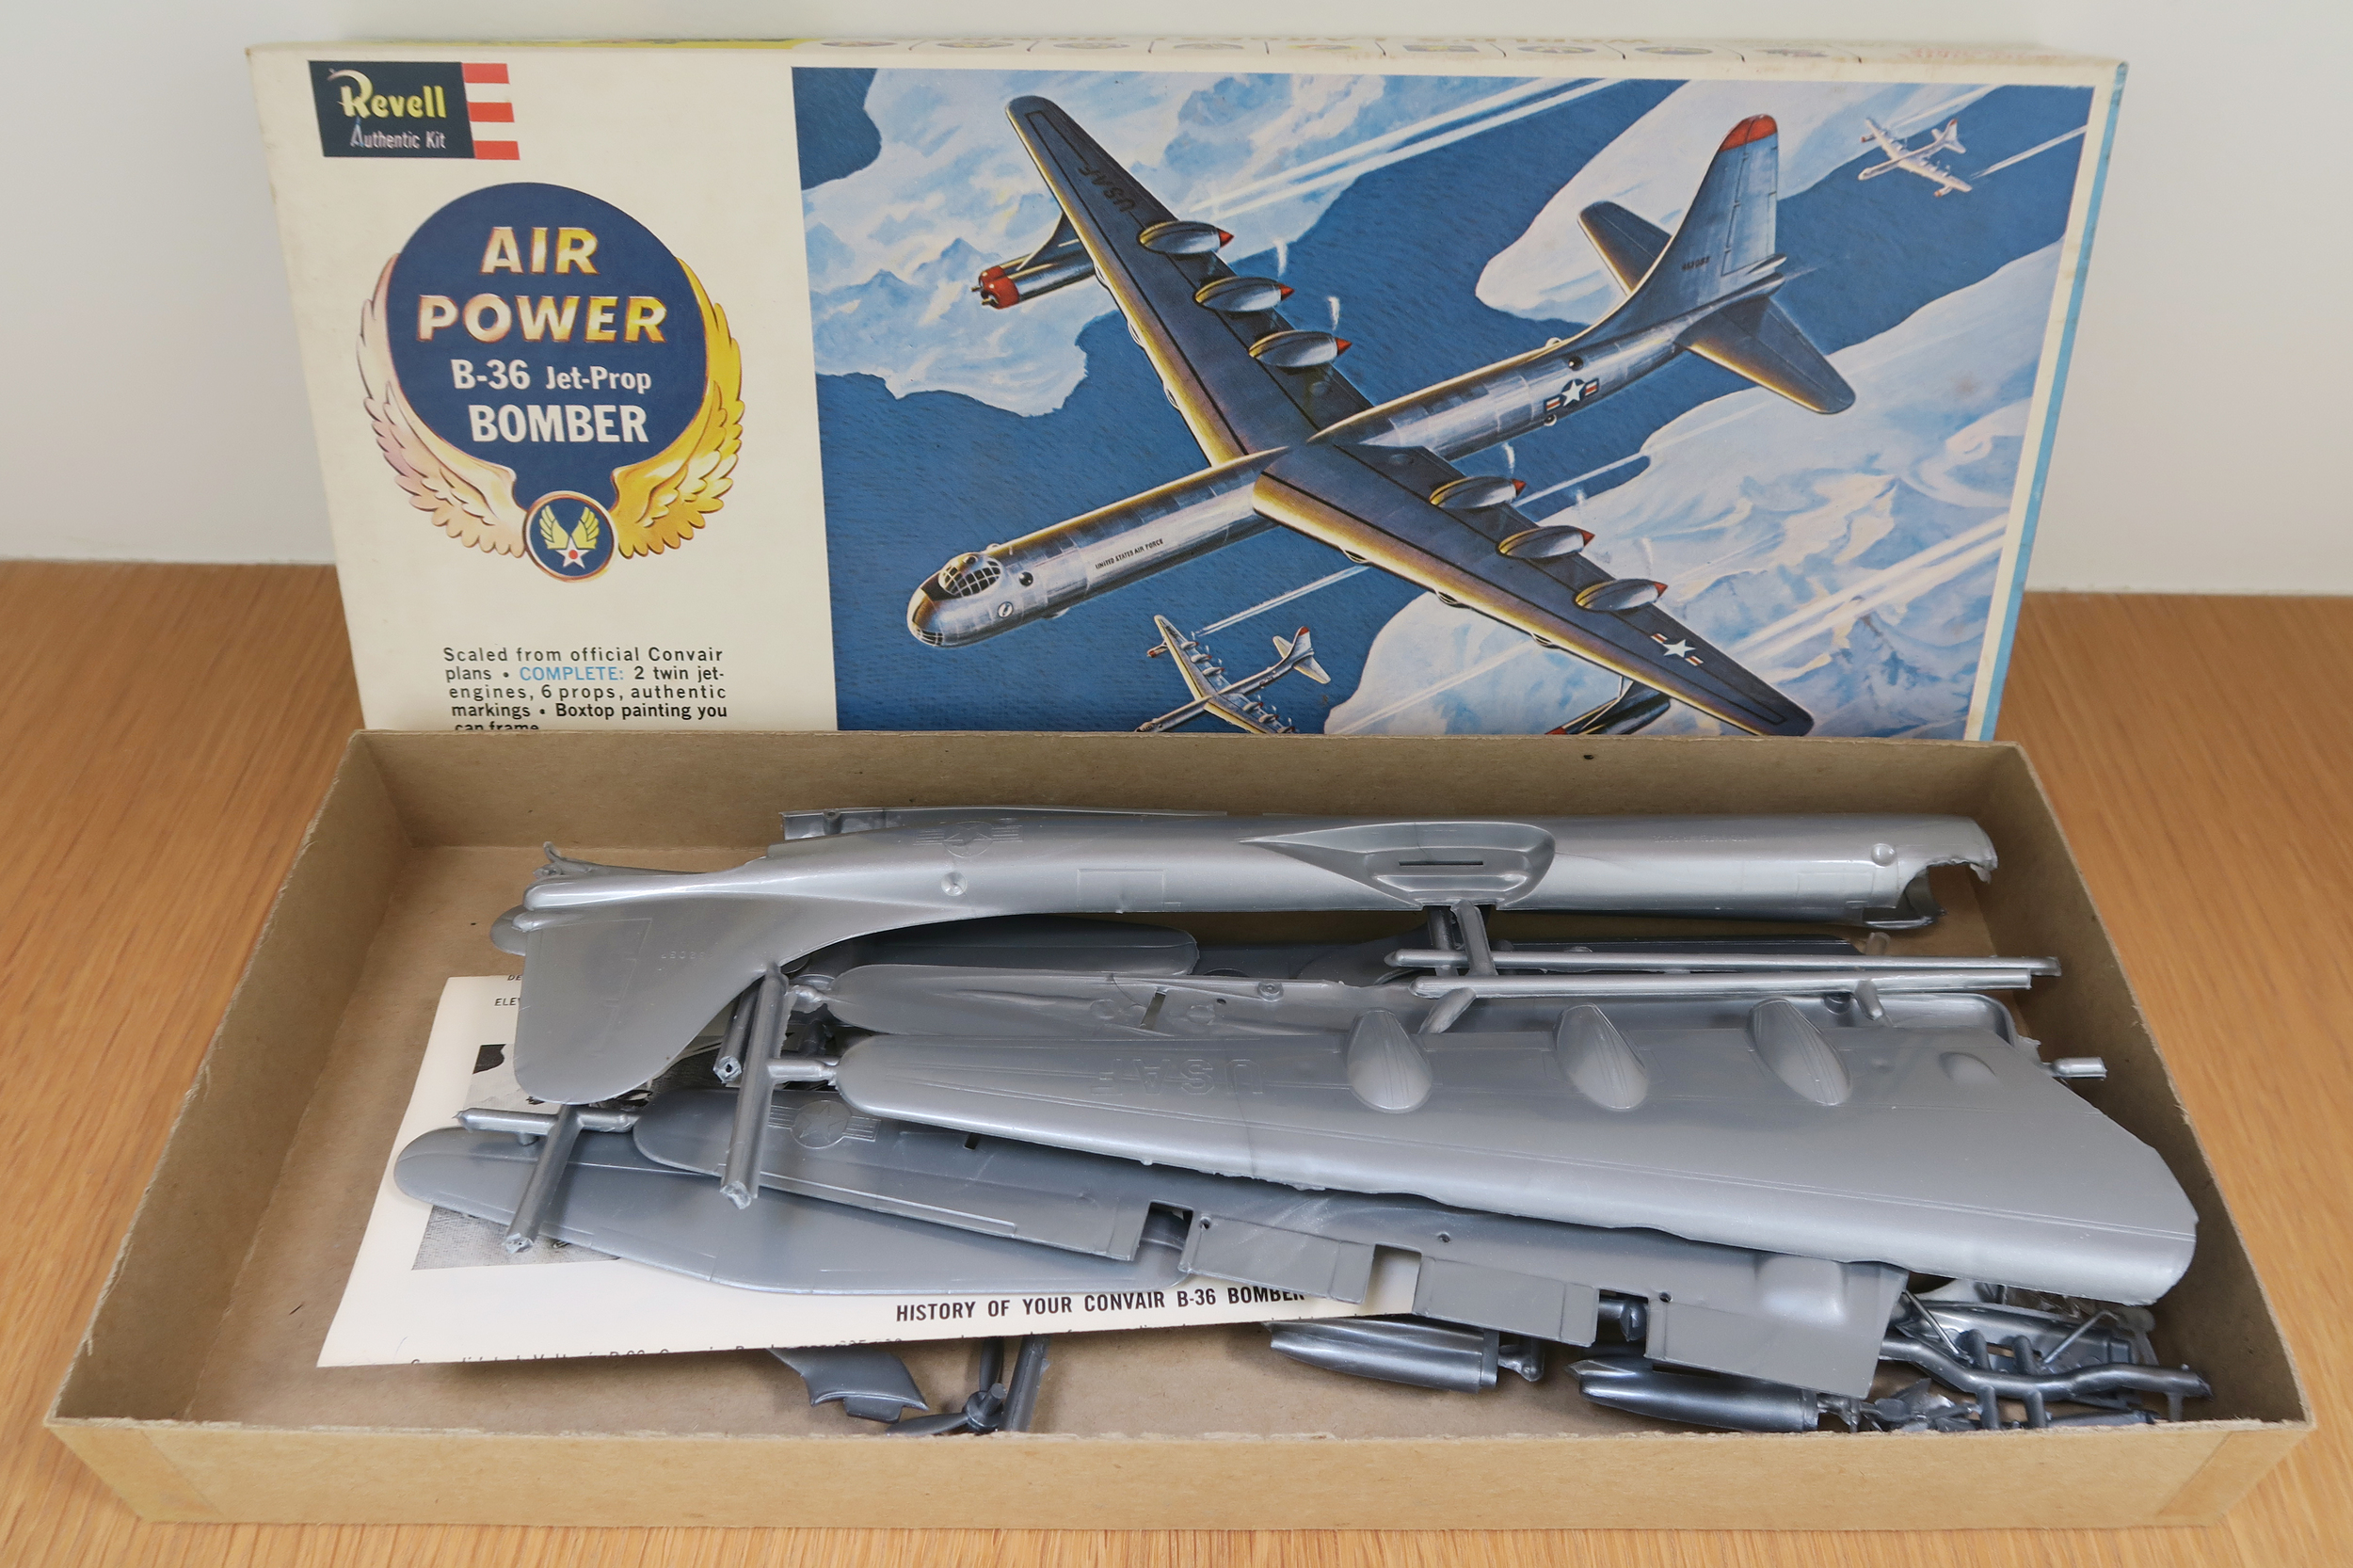 Revell - Air Power B-36 Jet-Prop Bomber  Scale: 1:184 USA - 1961